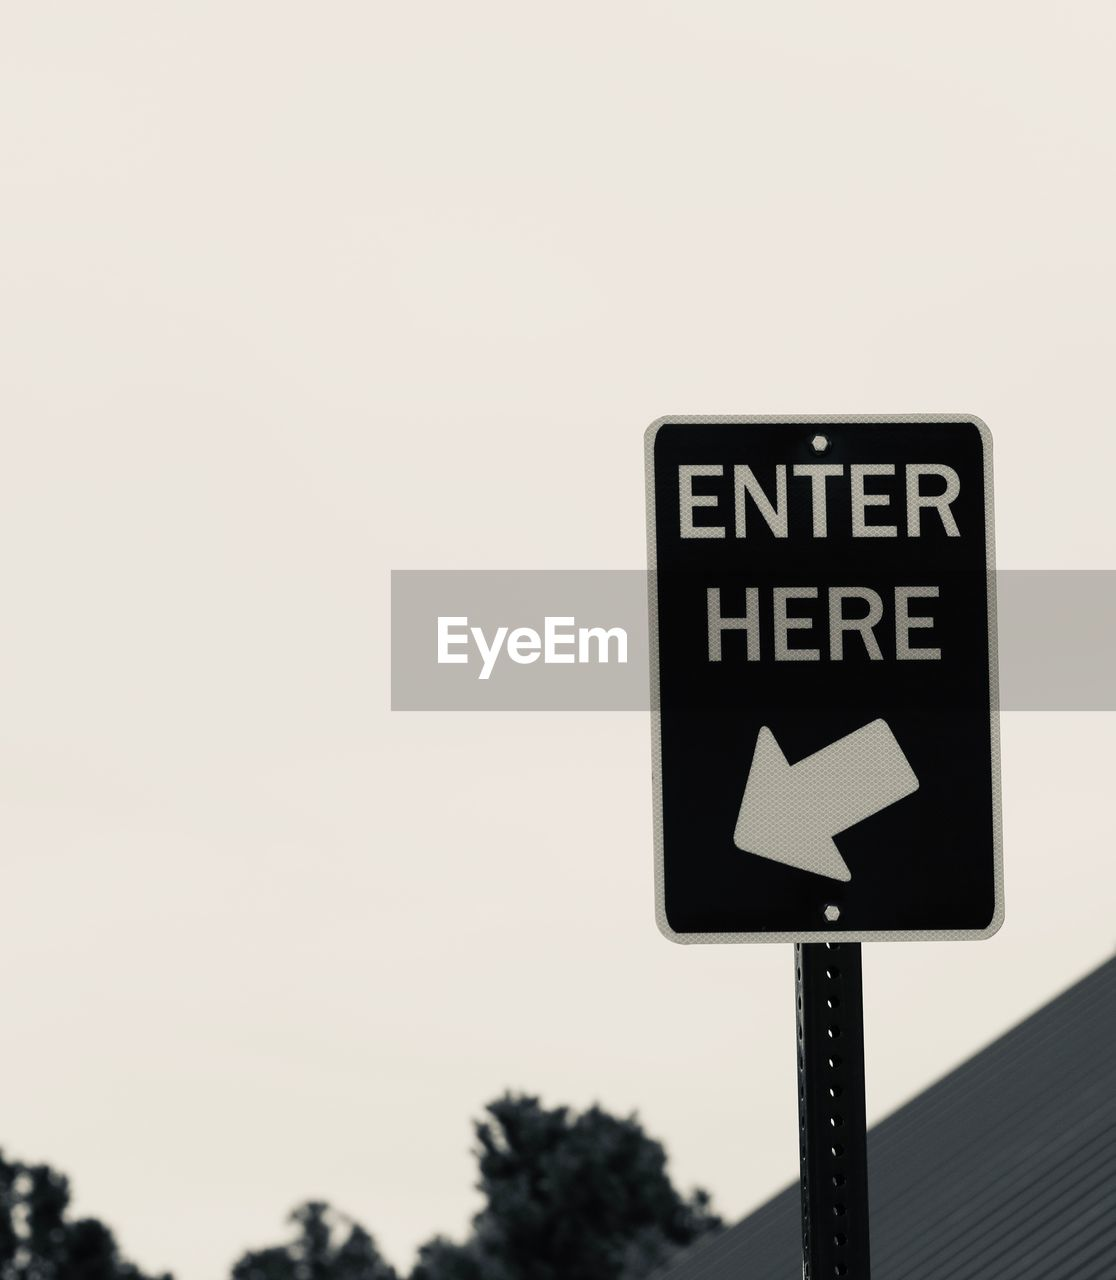 communication, sign, guidance, arrow symbol, sky, copy space, symbol, clear sky, text, direction, directional sign, western script, road sign, nature, no people, road, day, outdoors, information, close-up, one way